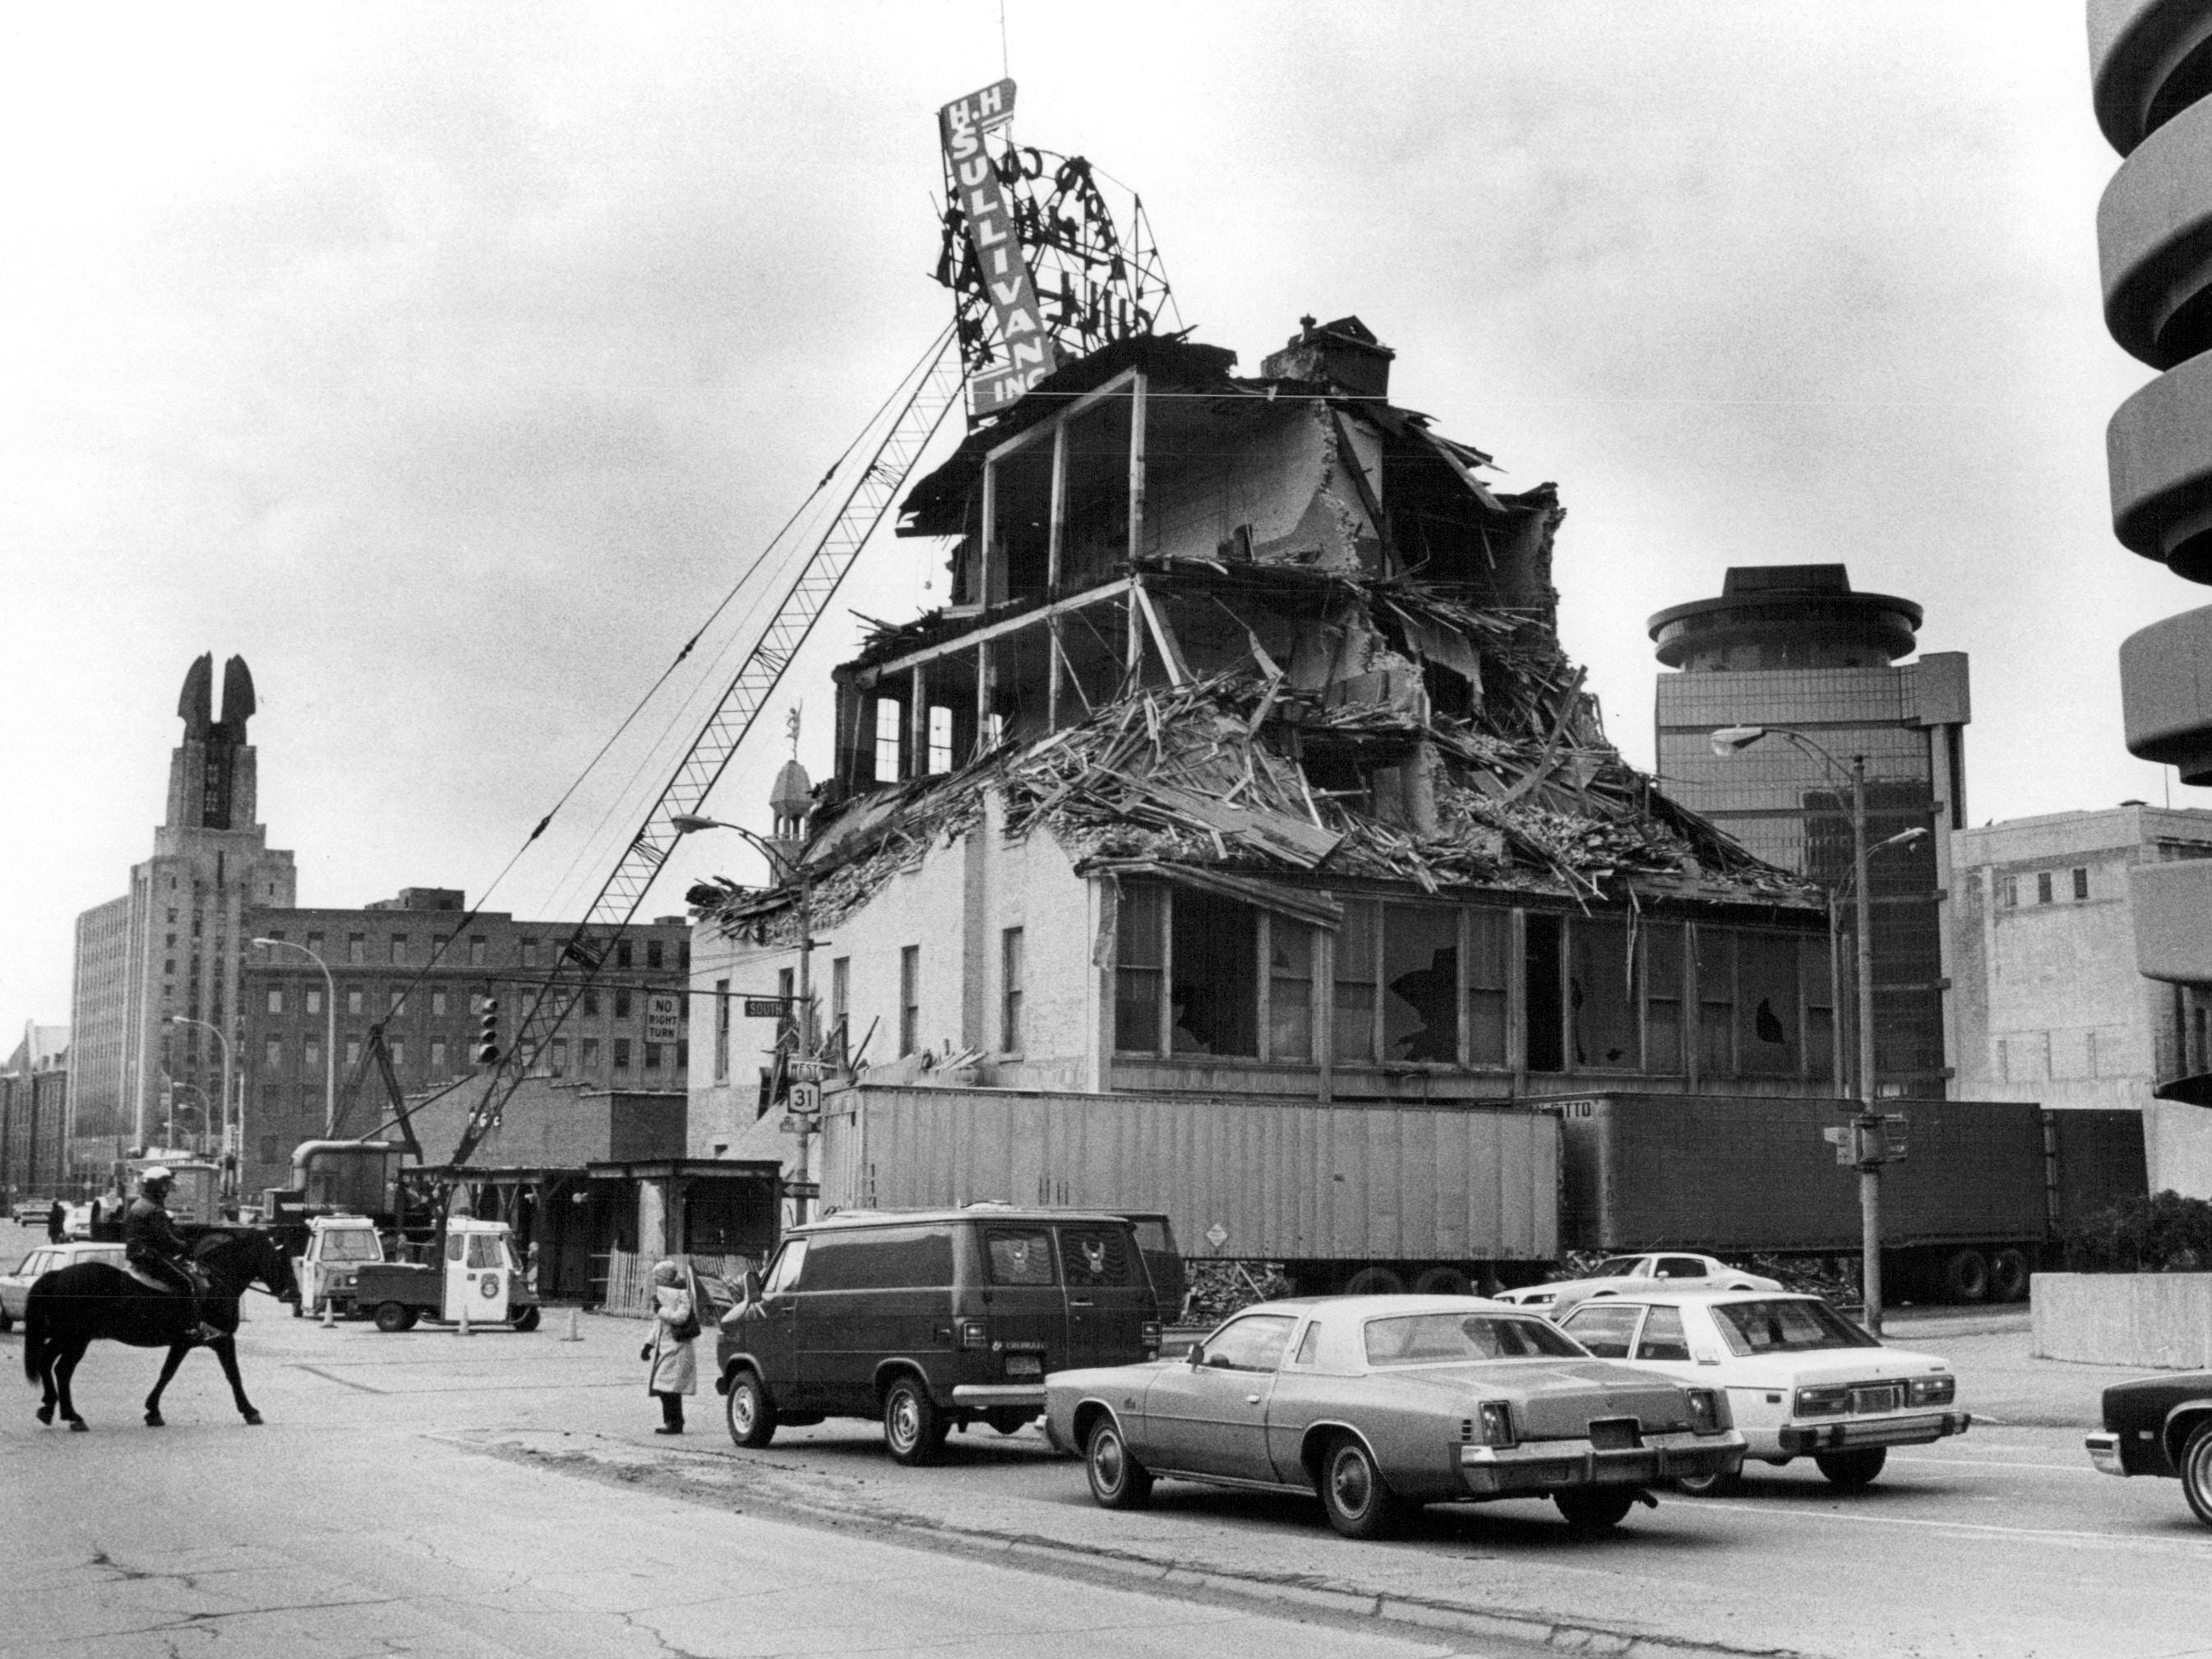 In this 1981 photo, the H.H. Sullivan building on the corner of Broad Street and South Avenue is torn down. At far right is the South Avenue parking garage. The H.H. Sullivan building was located directly across from the Rundel library. The area beyond the horse is the Broad Street bridge.